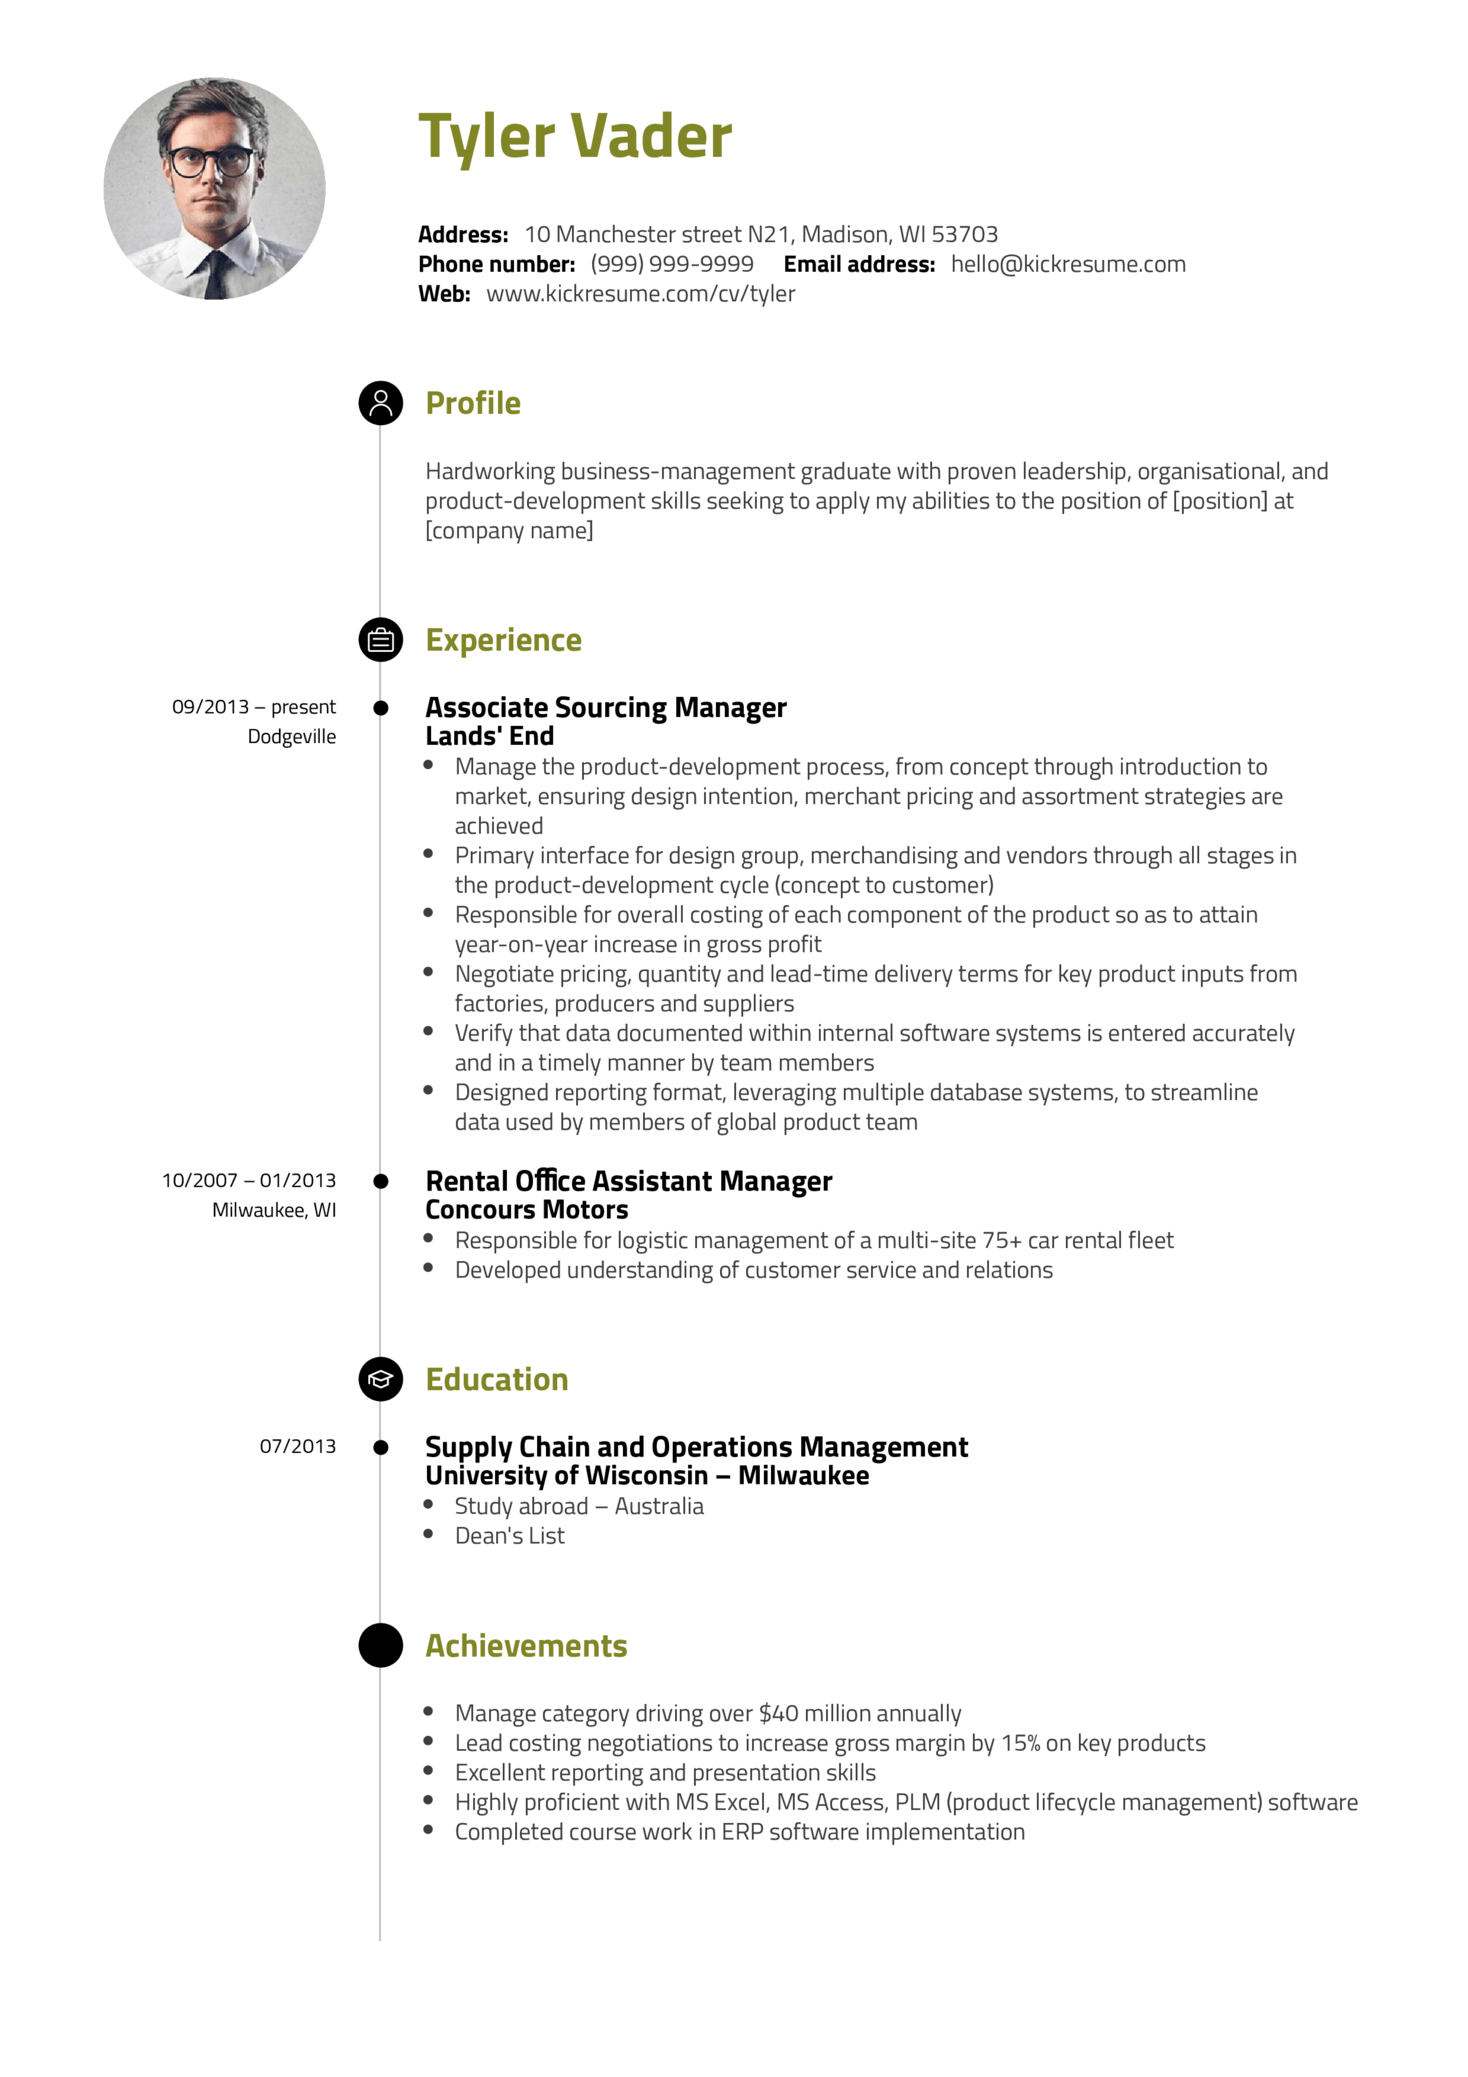 Students Resume Samples Resume Examples By Real People Business Management Graduate Cv